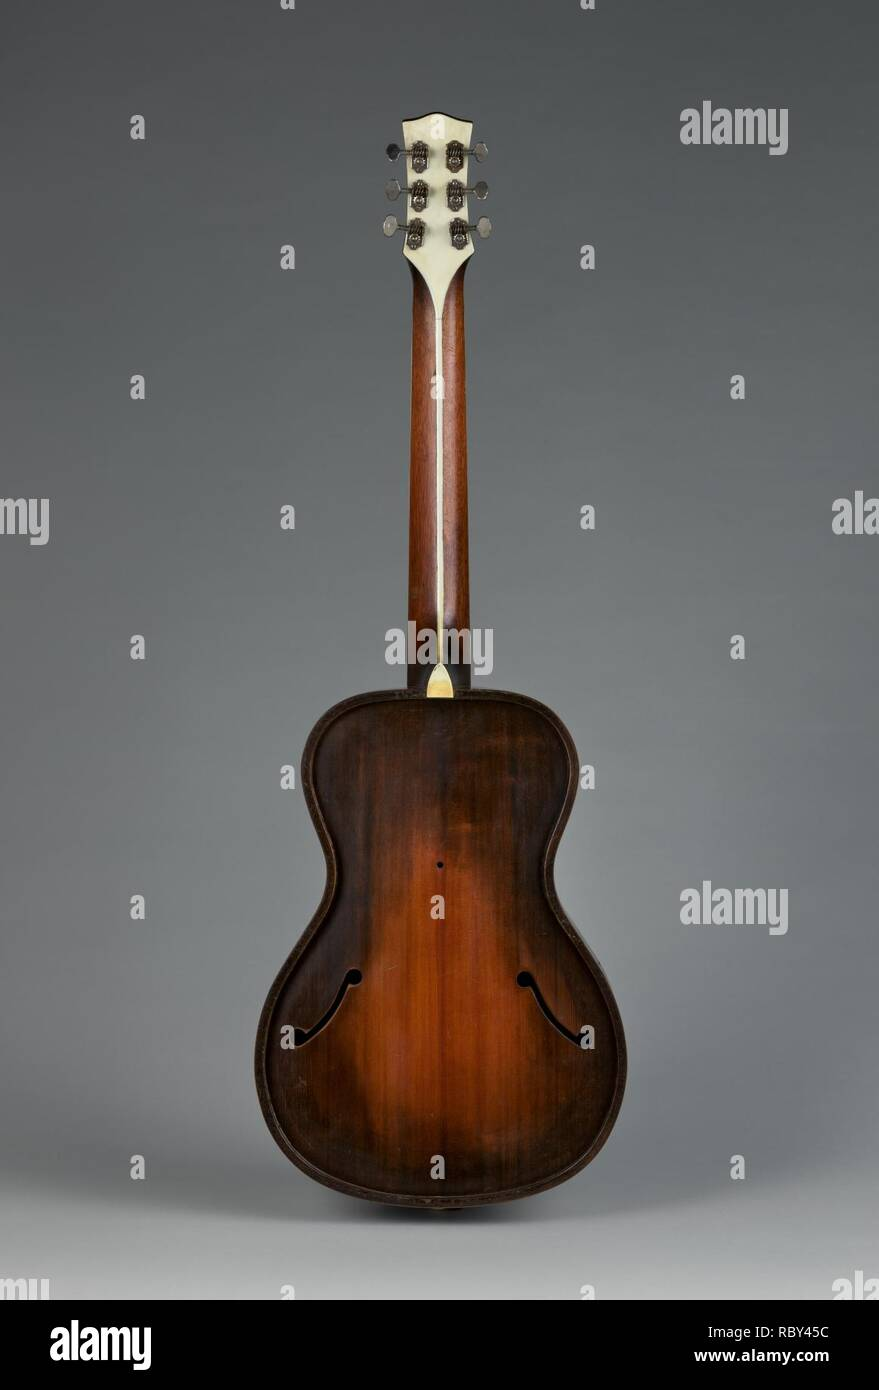 718444 Maker: Vivi-Tone, American, Acoustic-Electric Guitar, ca. 1933, Spruce, maple, mahogany, ebony, Height: 39 1/8 in. (99.4 cm) Width (At lower bout): 13 1/8 in. (33.3 cm) Depth (At side of rim): 3 3/4 in. (9.5 cm). - Stock Image